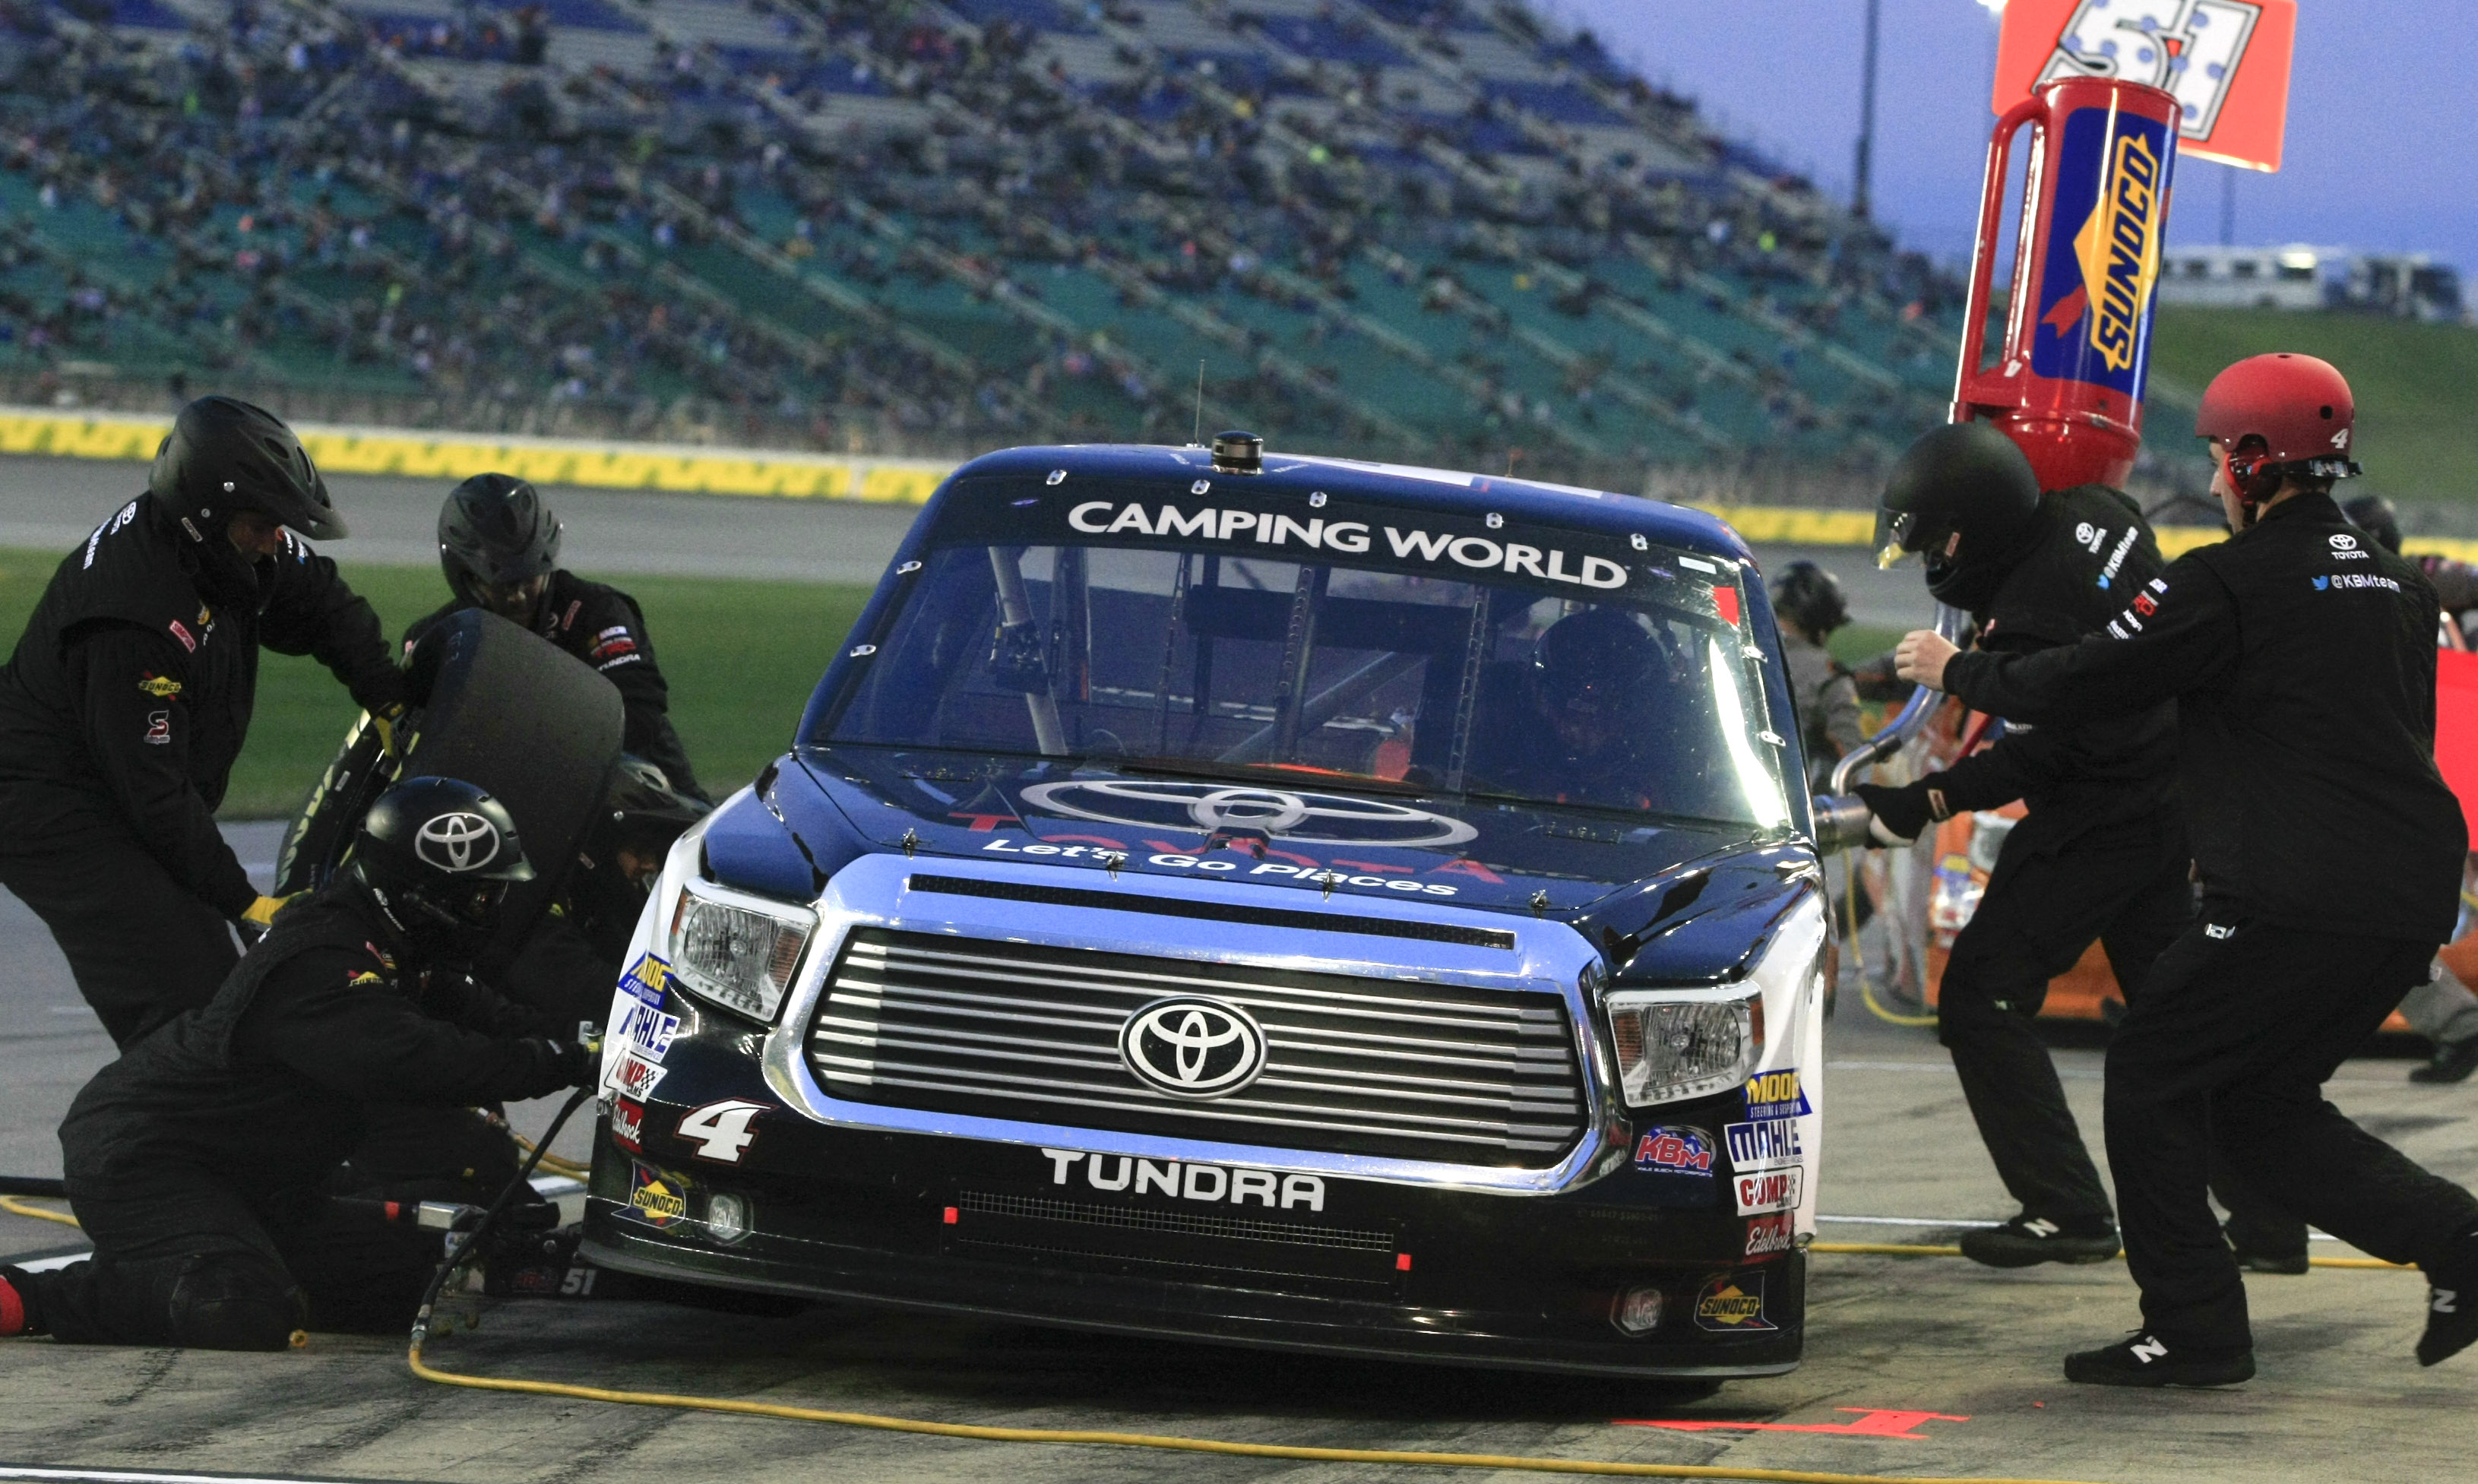 Crafton Conserves Enough Fuel To Win Trucks Series Race Wtop